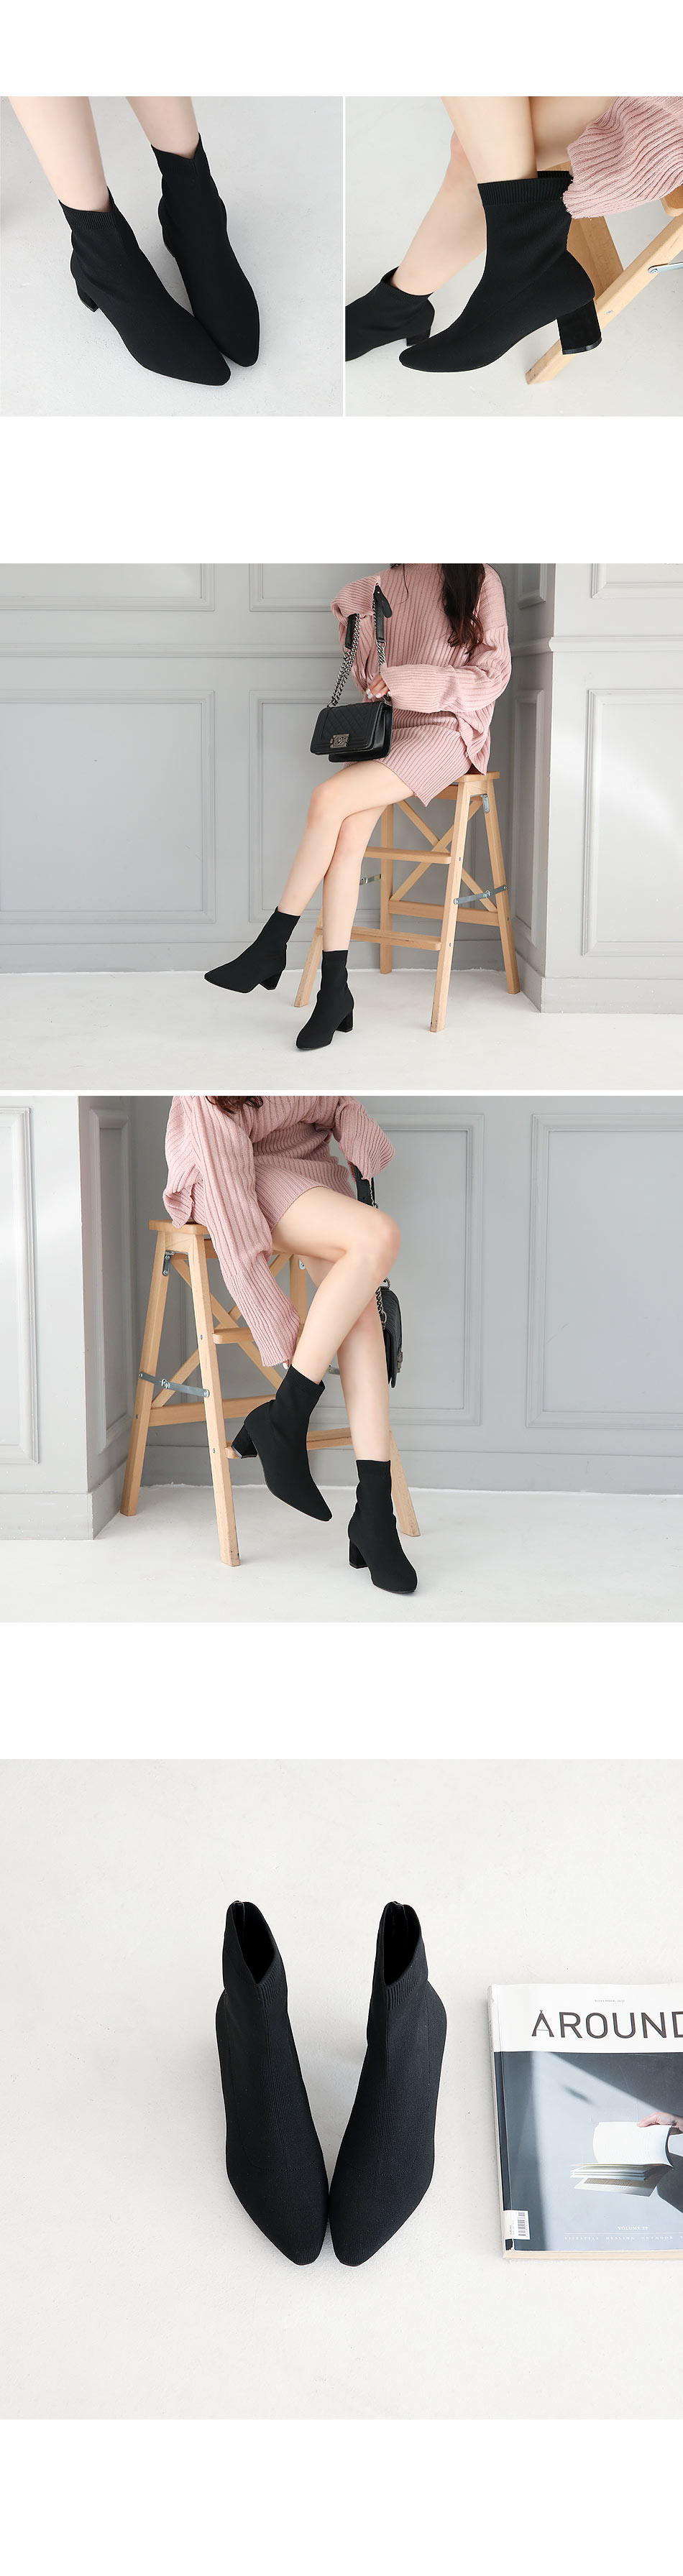 Reventa Sox Ankle Boots 5cm